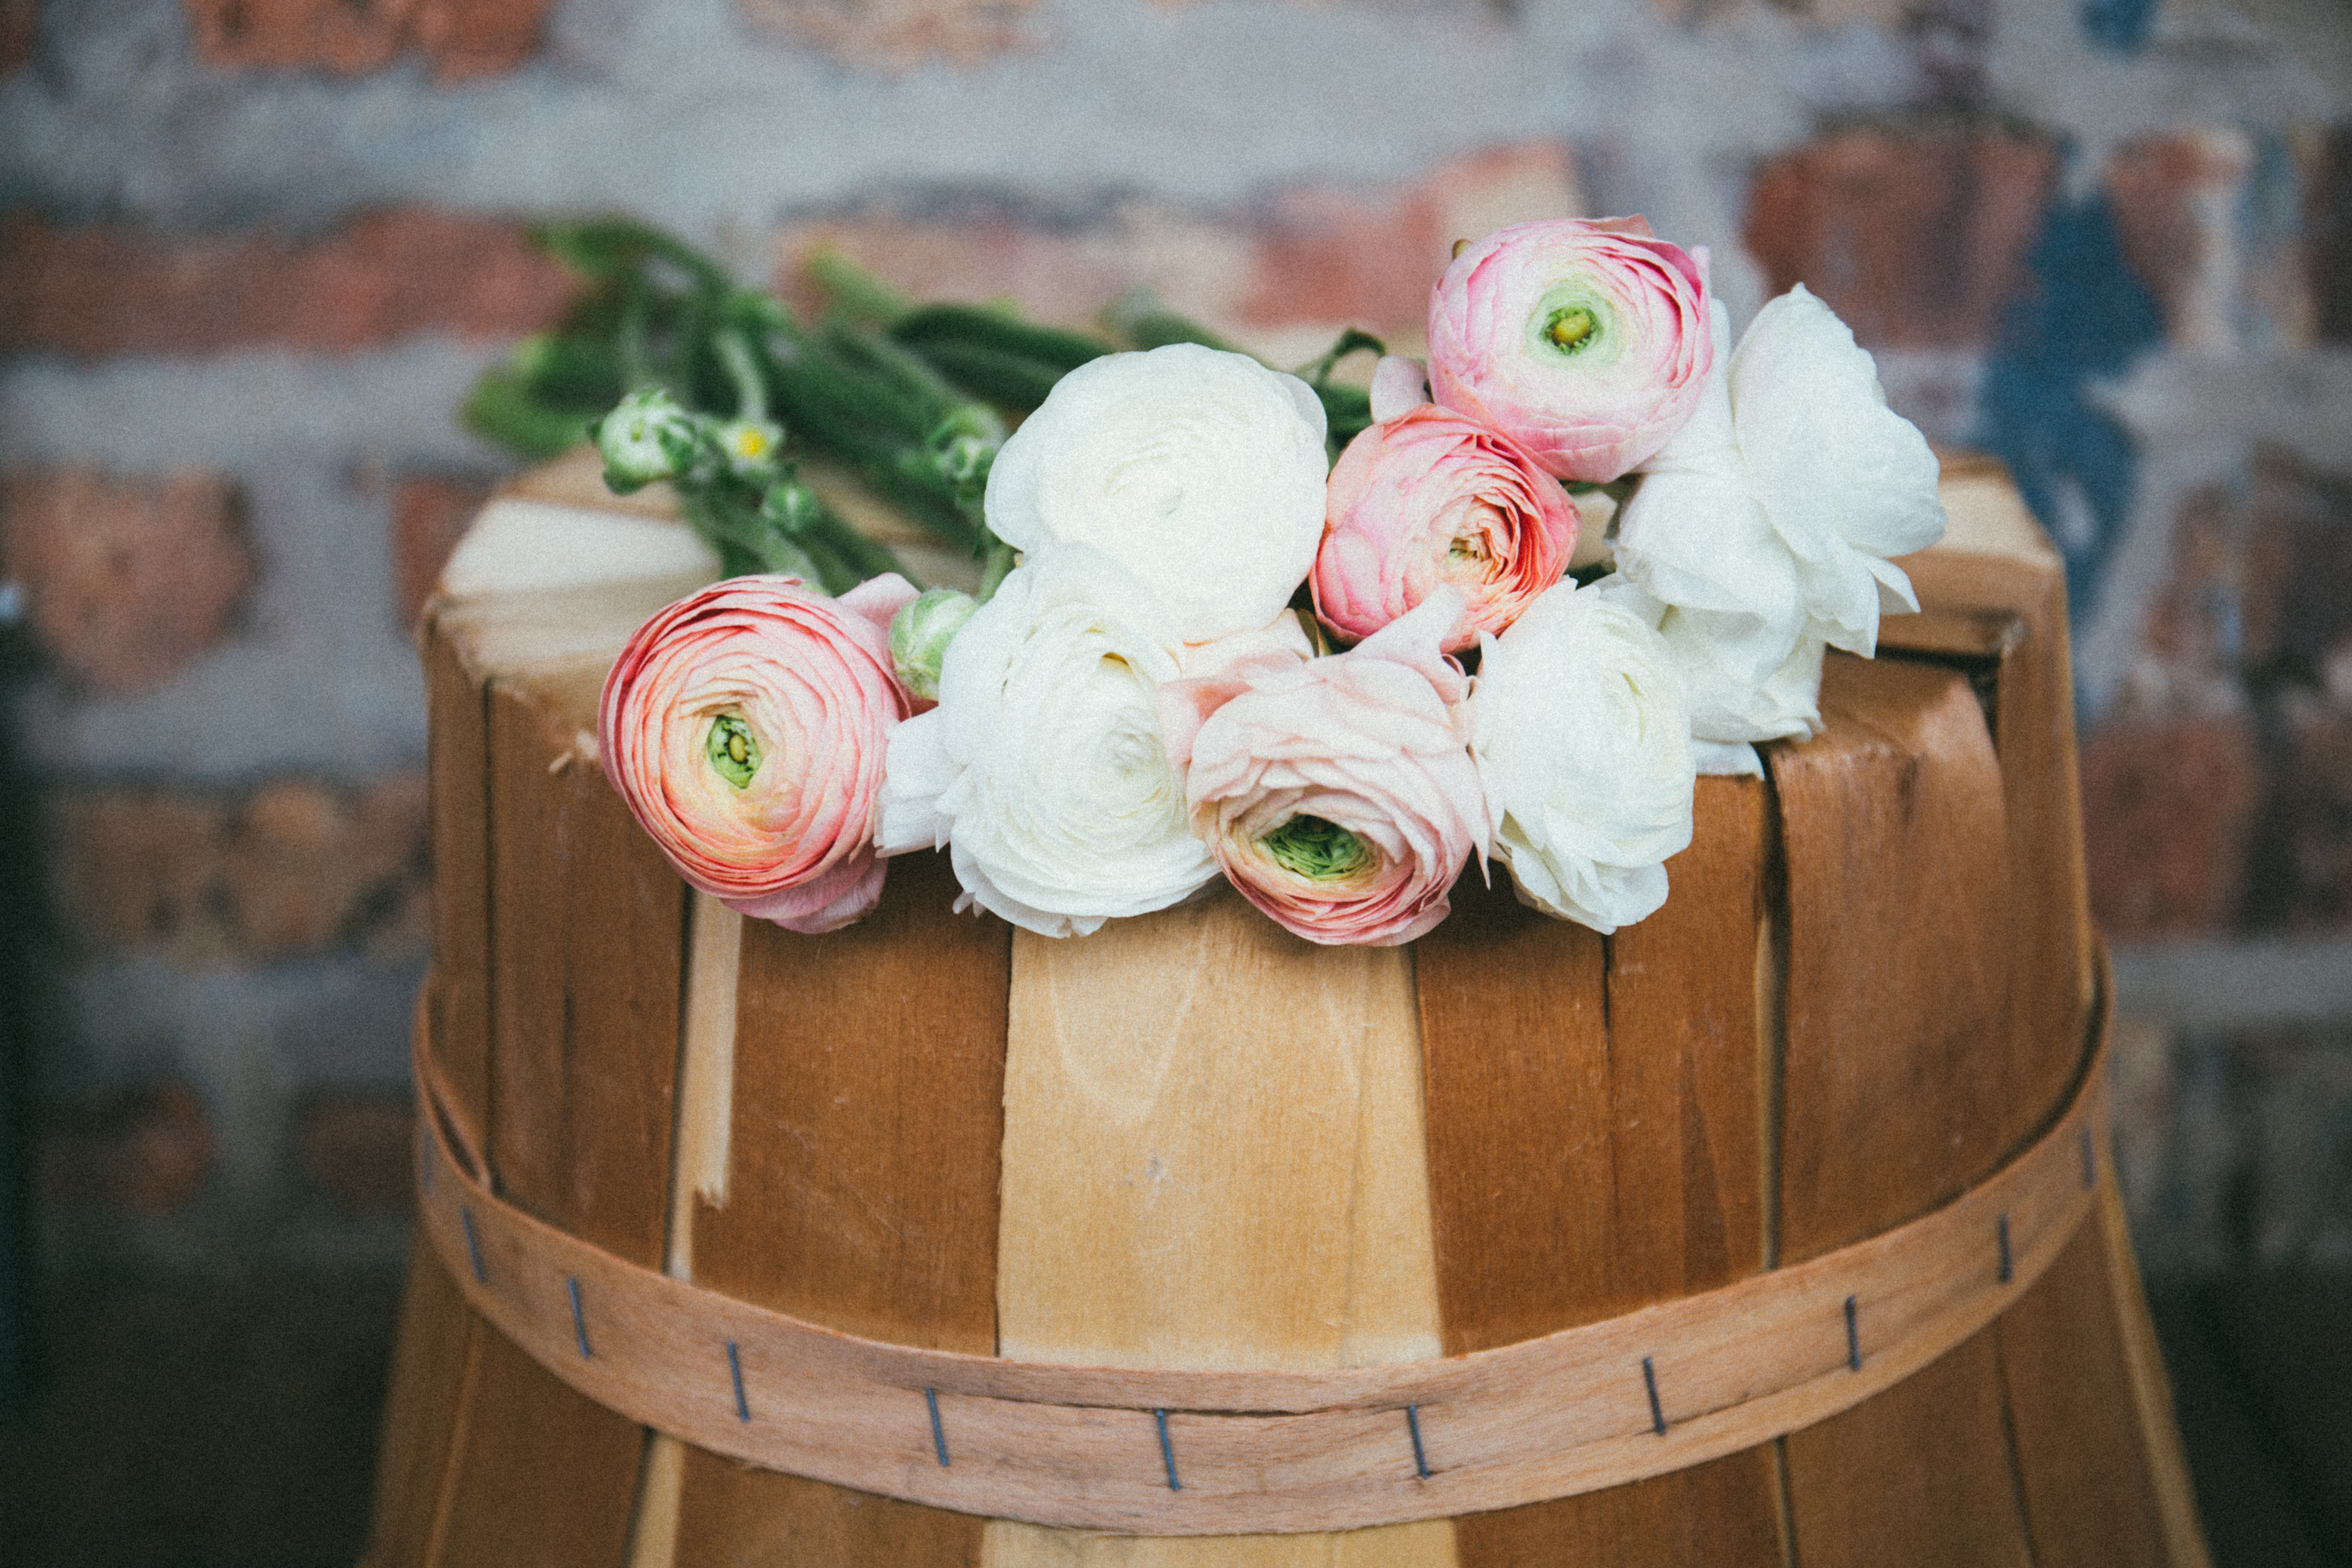 Several white and pink rose-like flowers on top of an overturned bucket